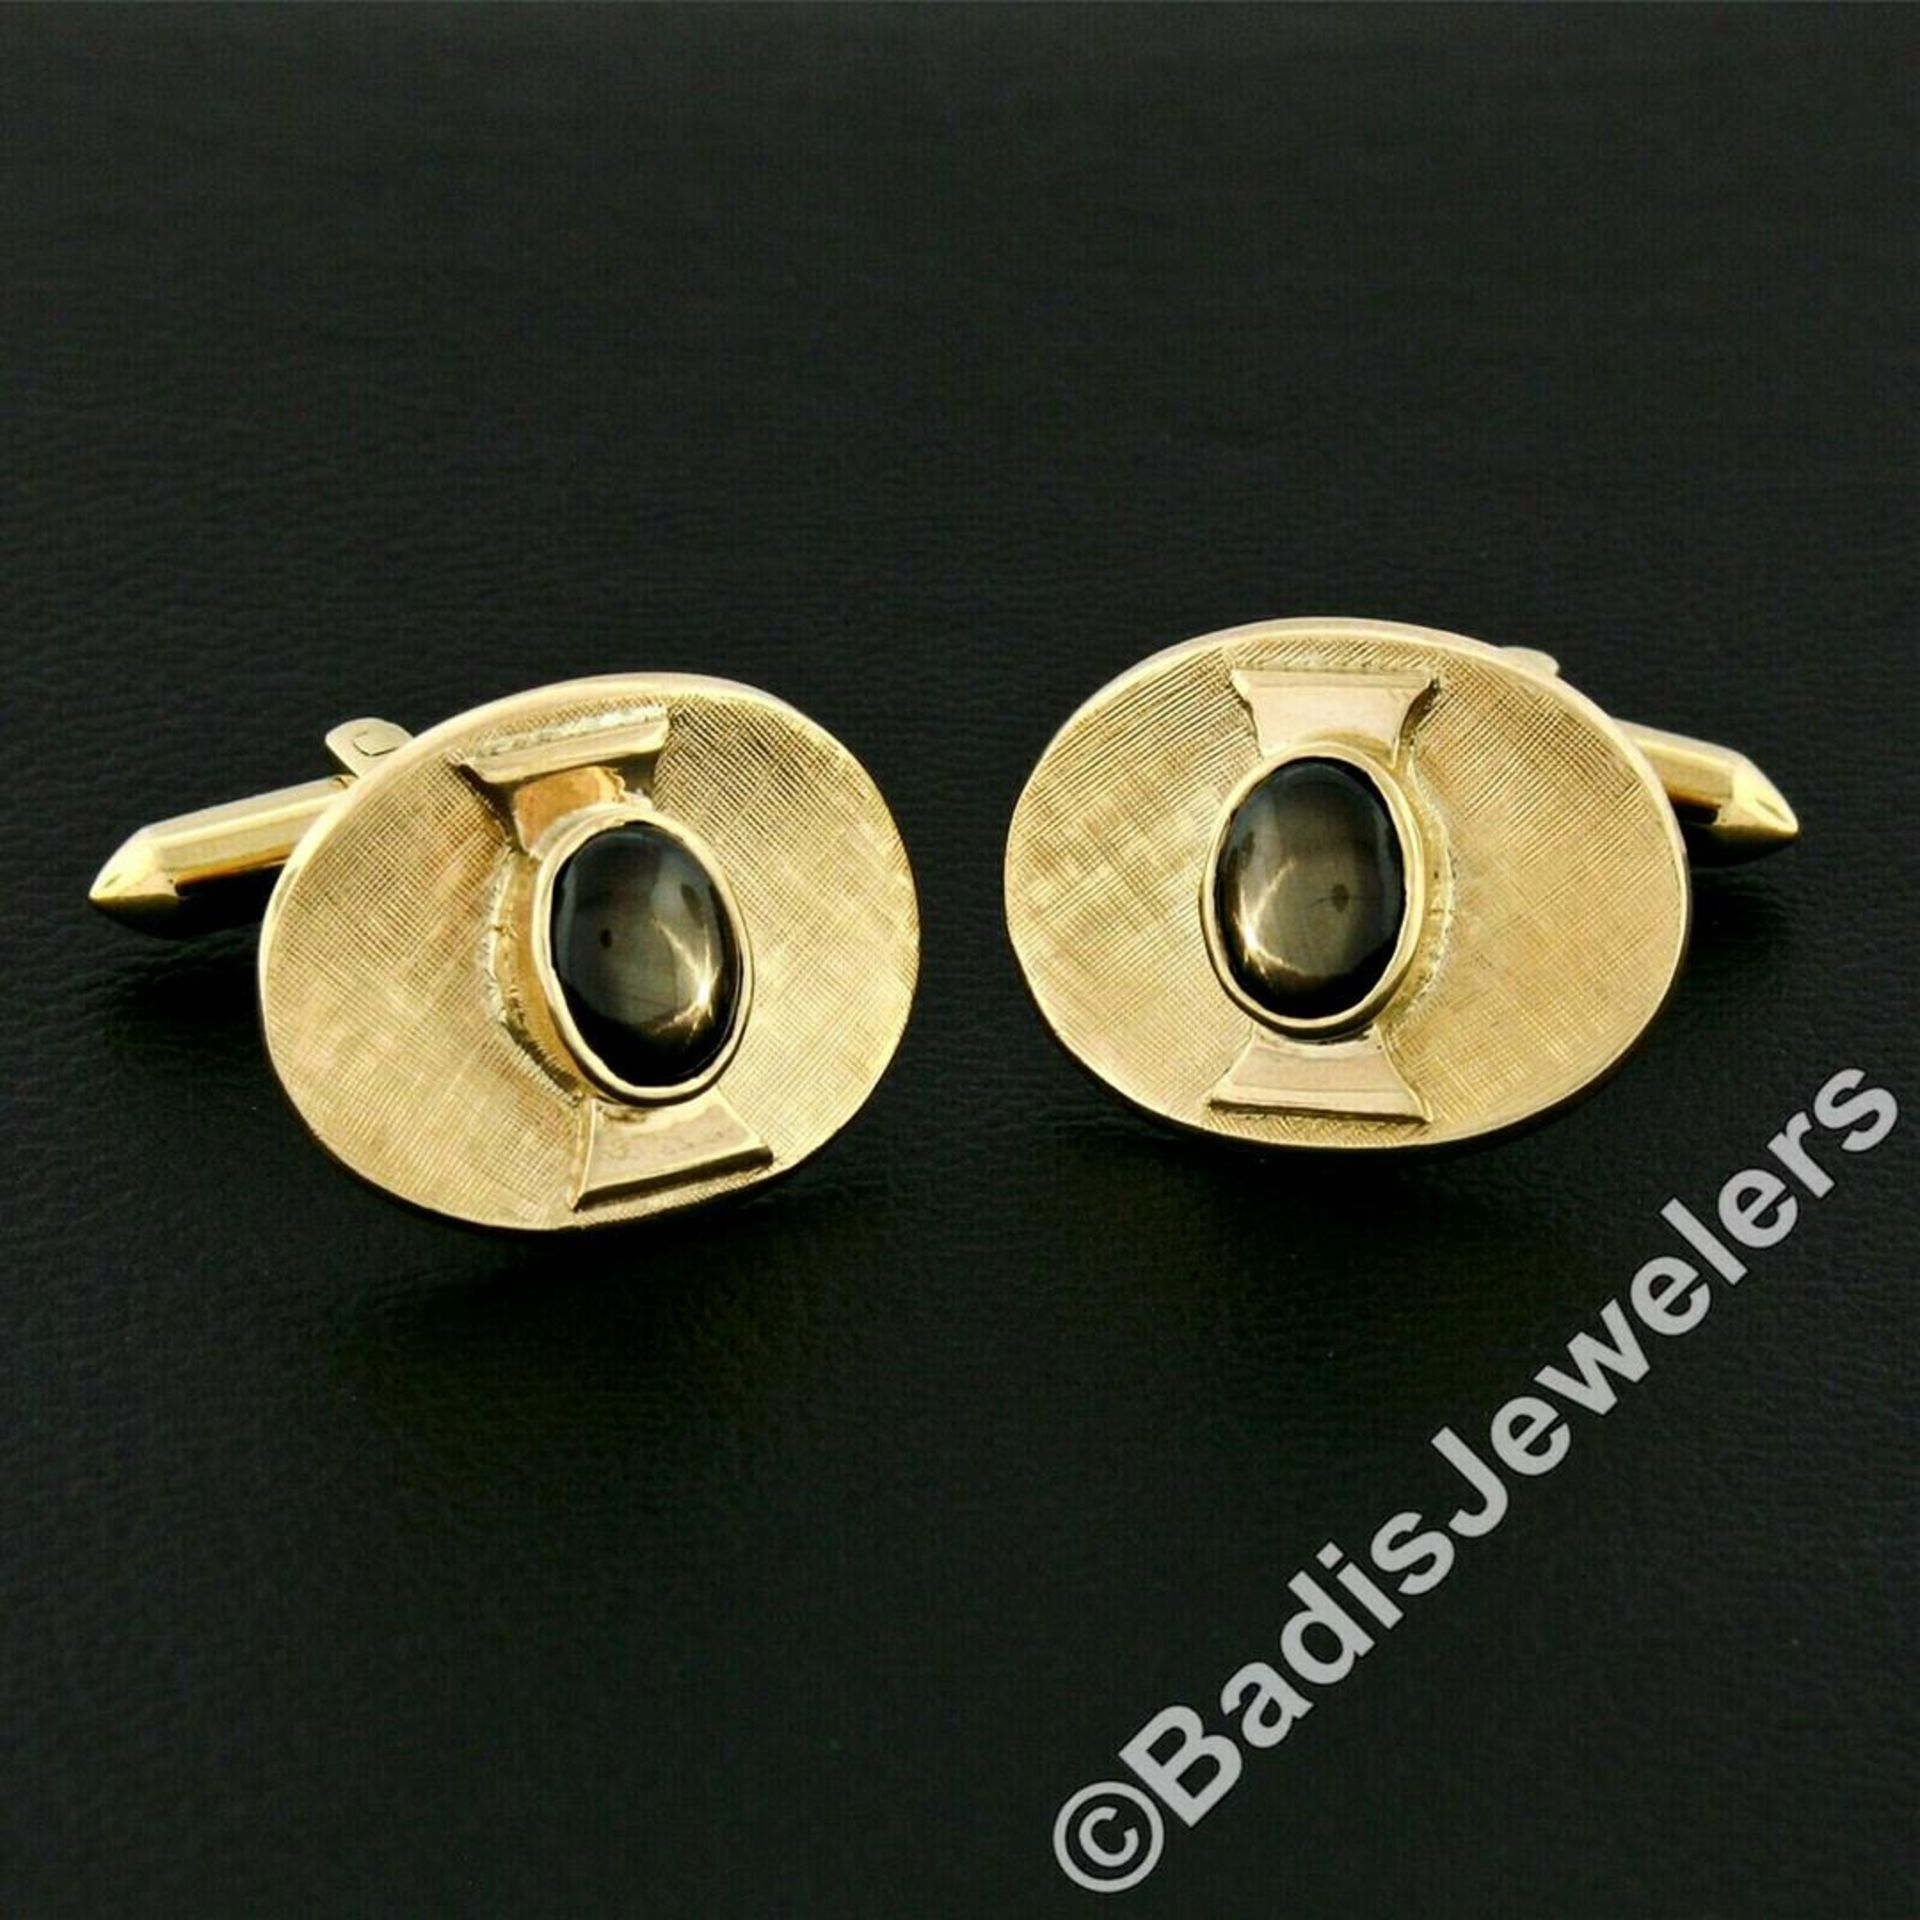 Vintage Men's 18kt Gold Oval Brown Star Sapphire Florentine Cuff Links - Image 2 of 5